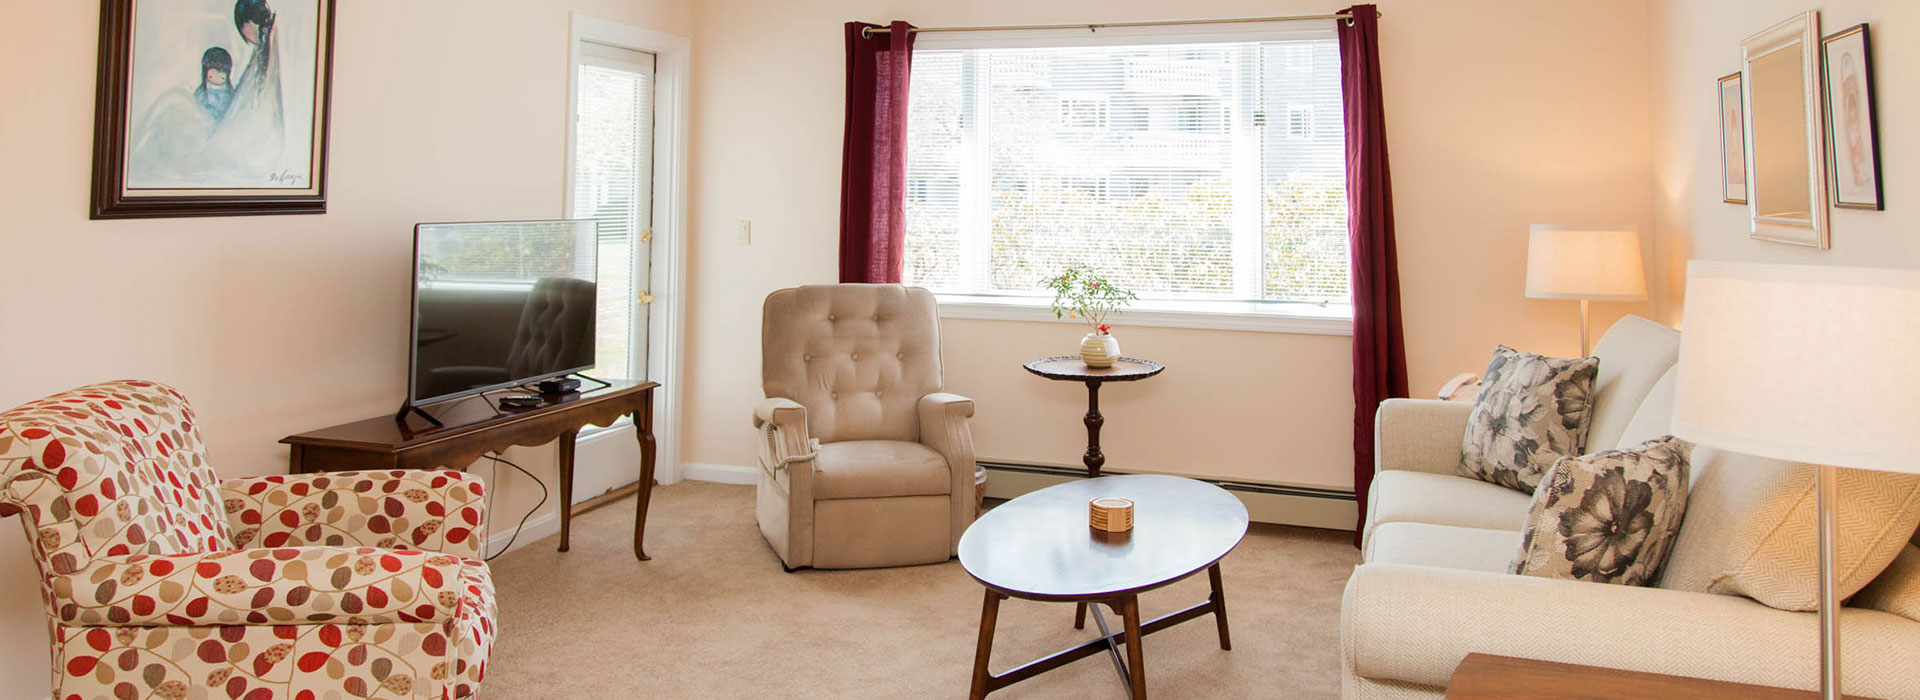 Thirwood Place senior apartment